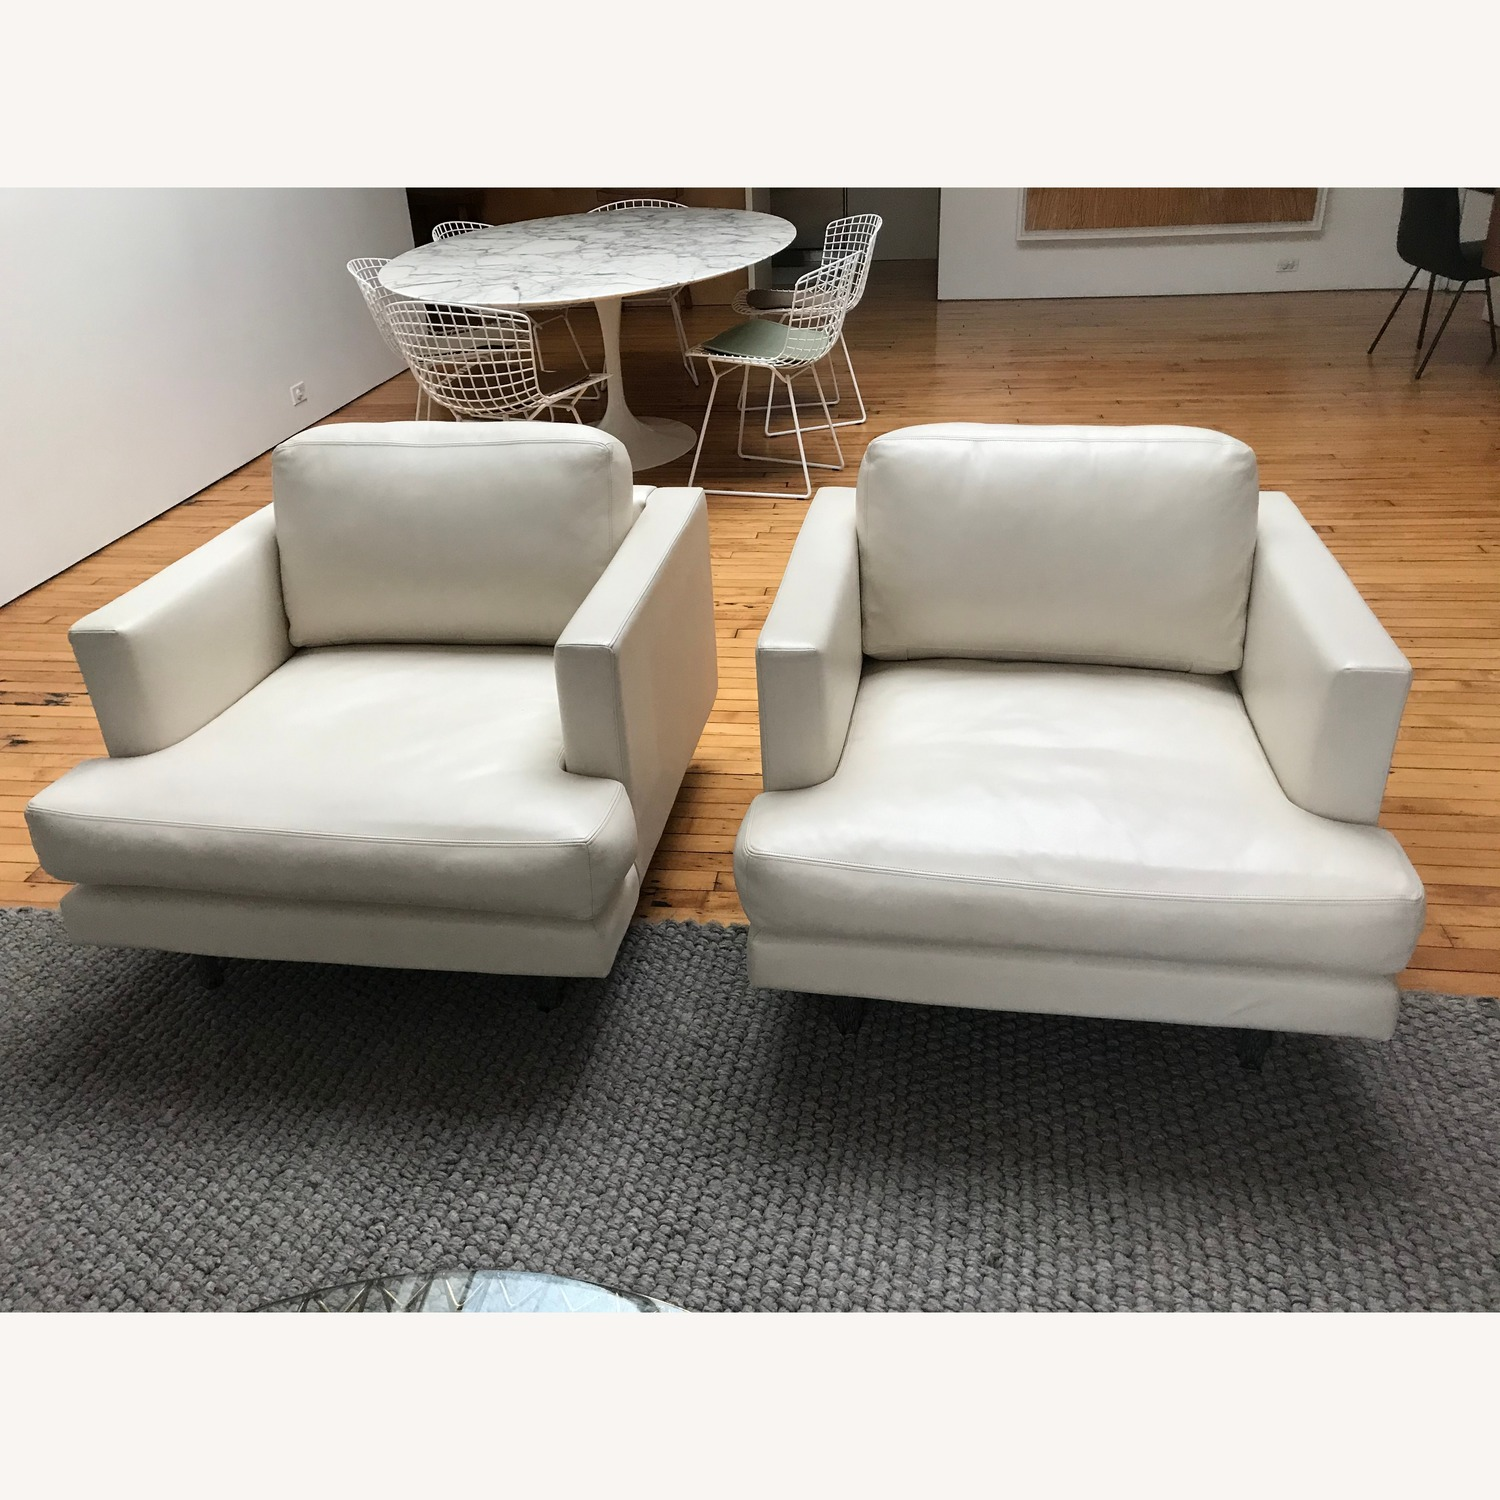 Knoll D'Urso Leather Lounge Chairs